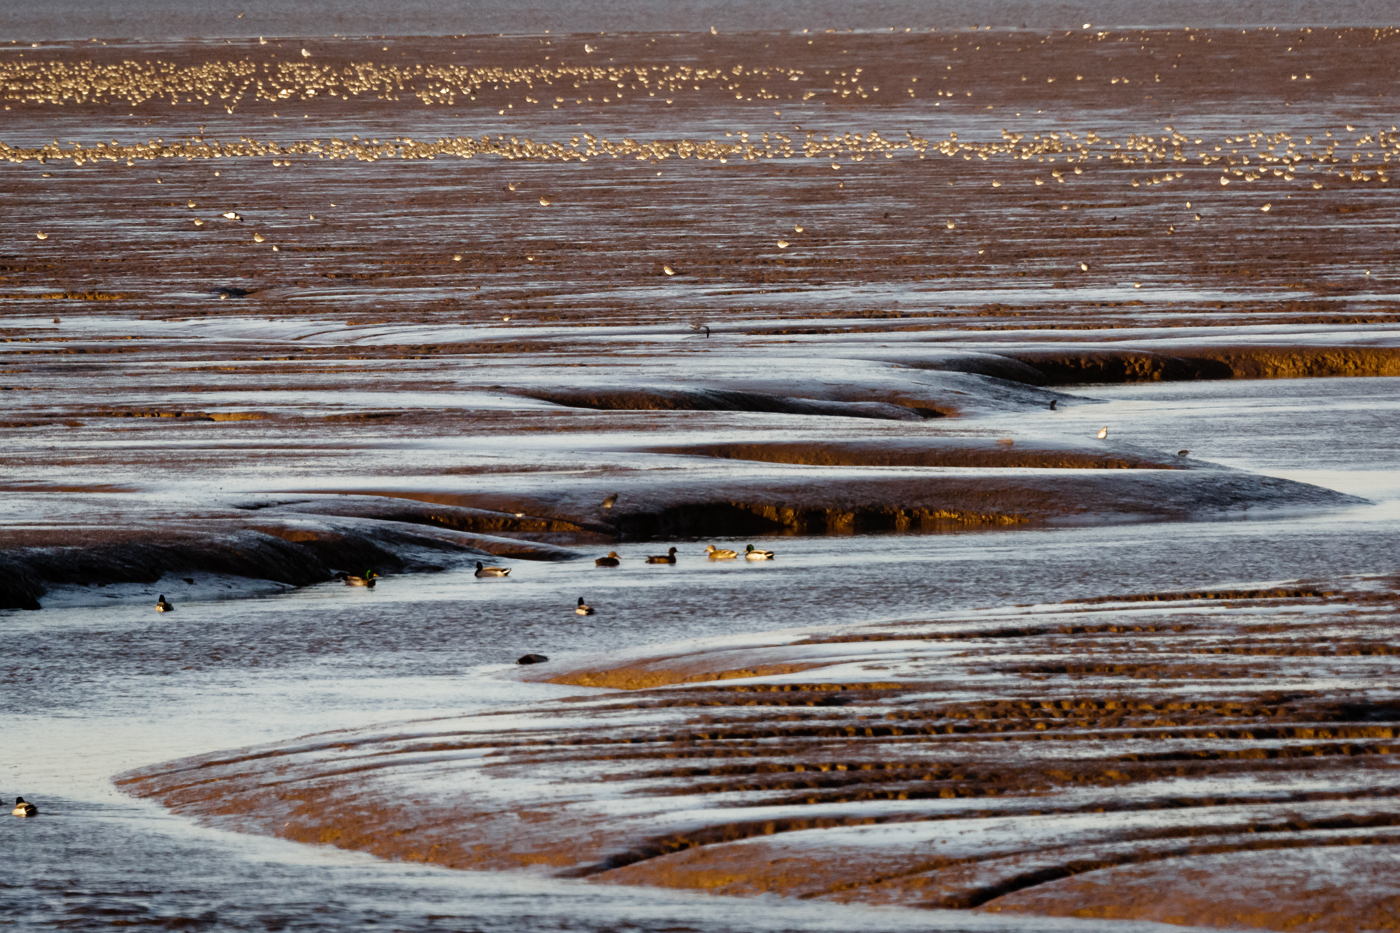 Waders on mudflats in The Wash as the tide ebbs